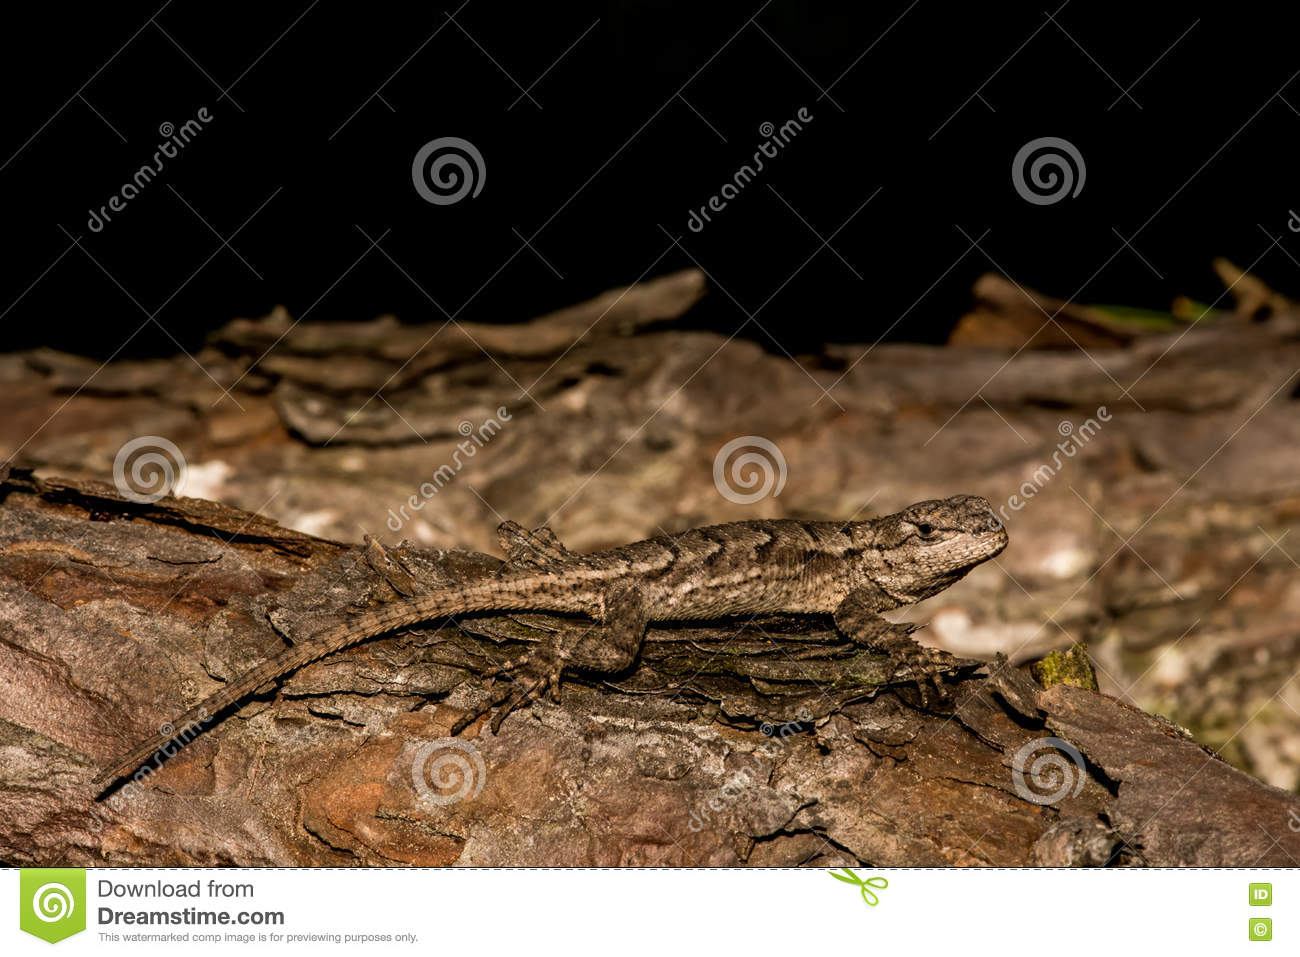 Eastern Fence Lizard Stock Photo Image Of Environment 70805526